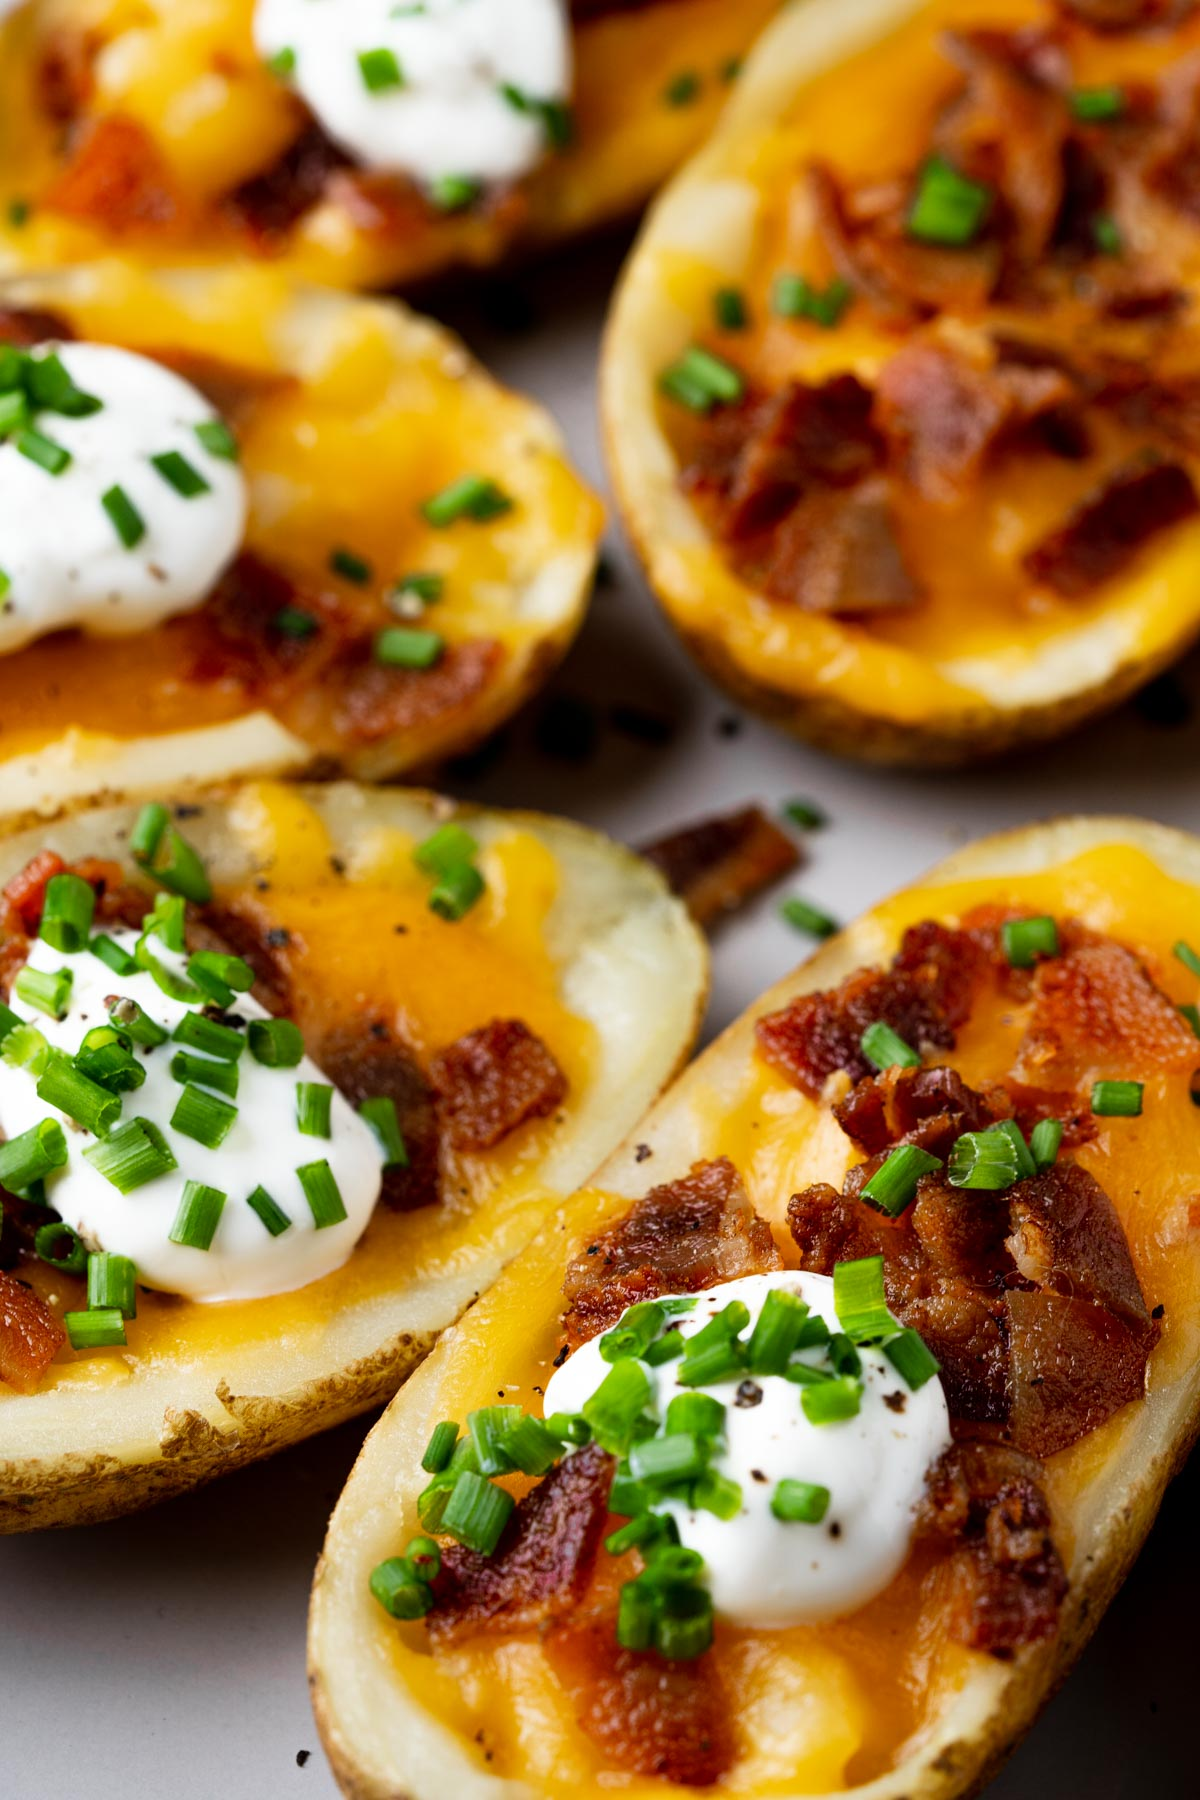 plate of air fryer potato skins with cheese, bacon and chives